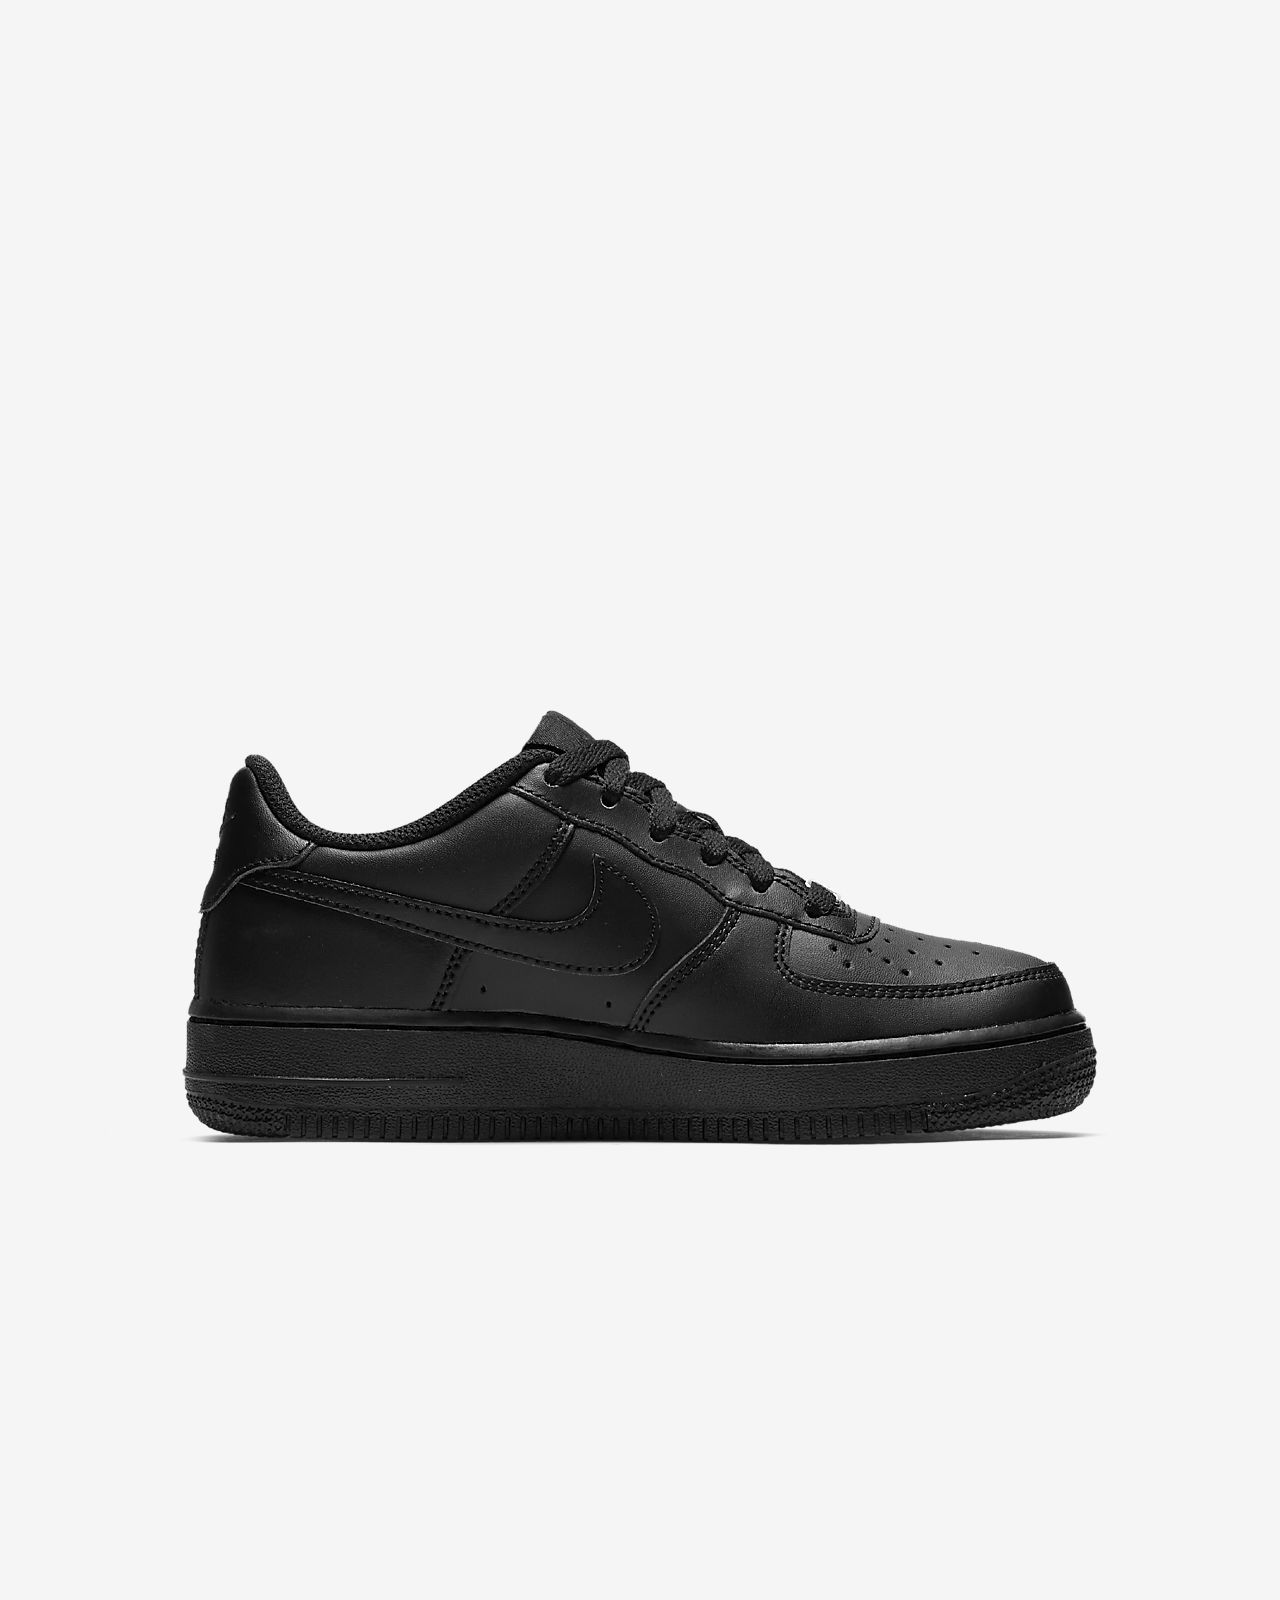 Nike Airforce 1: Sneakers of the Month | Buty, Buty